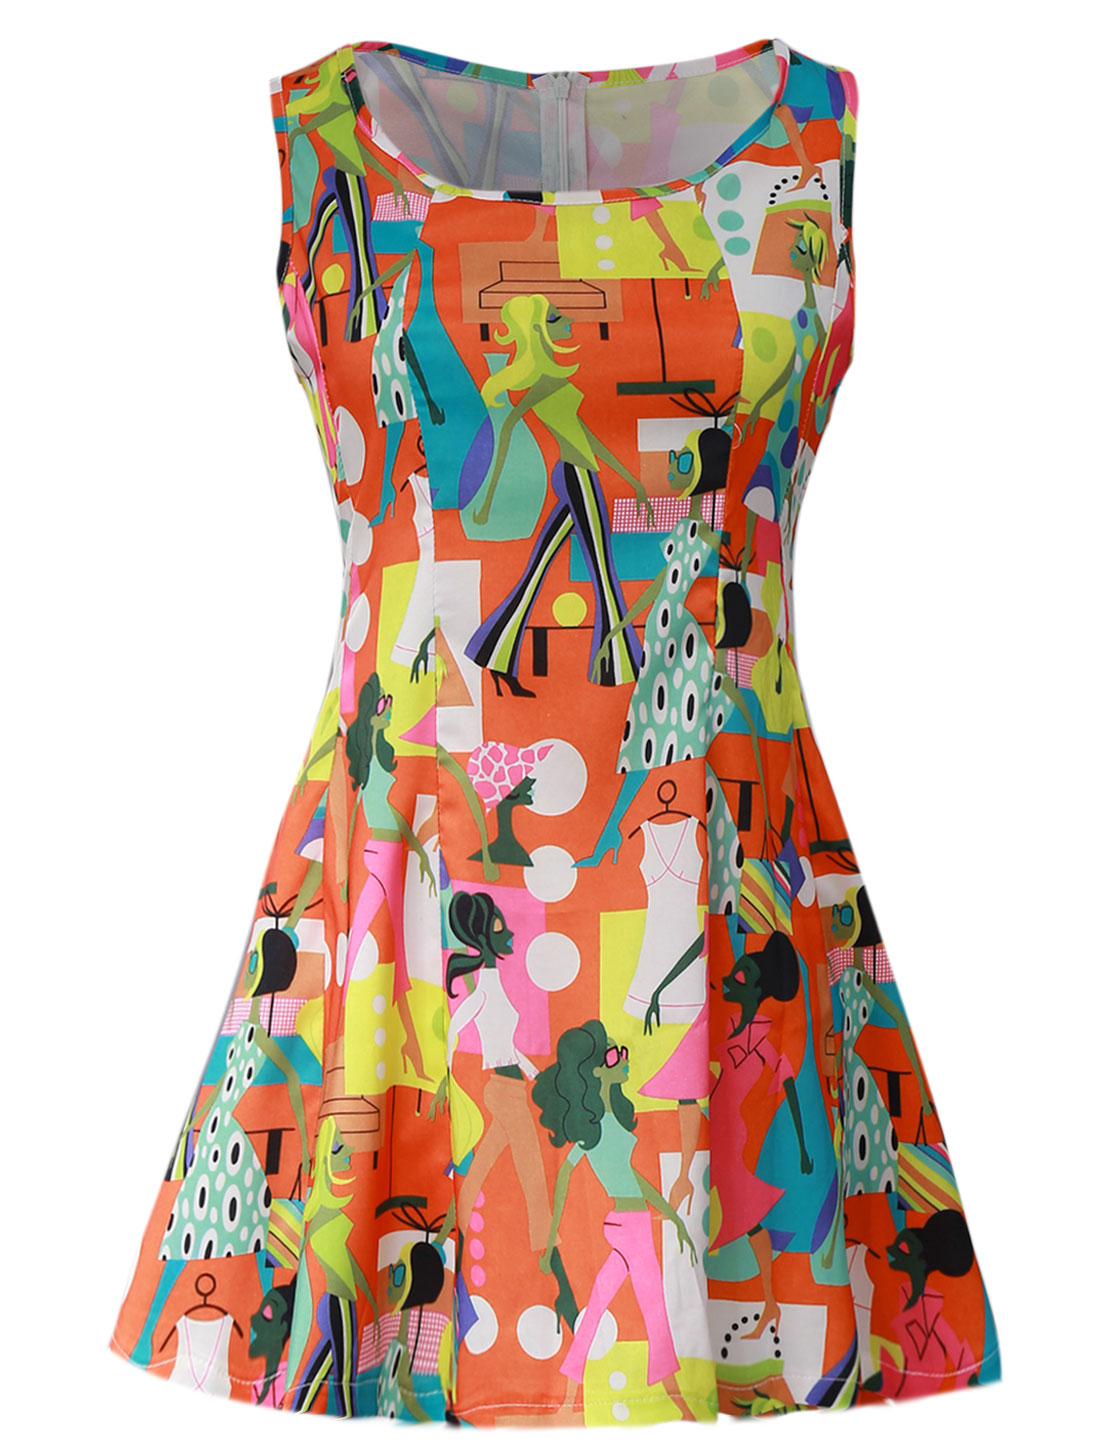 Lady Cartoon Portrait Prints Zip Fly Back Skater Dress Orange S